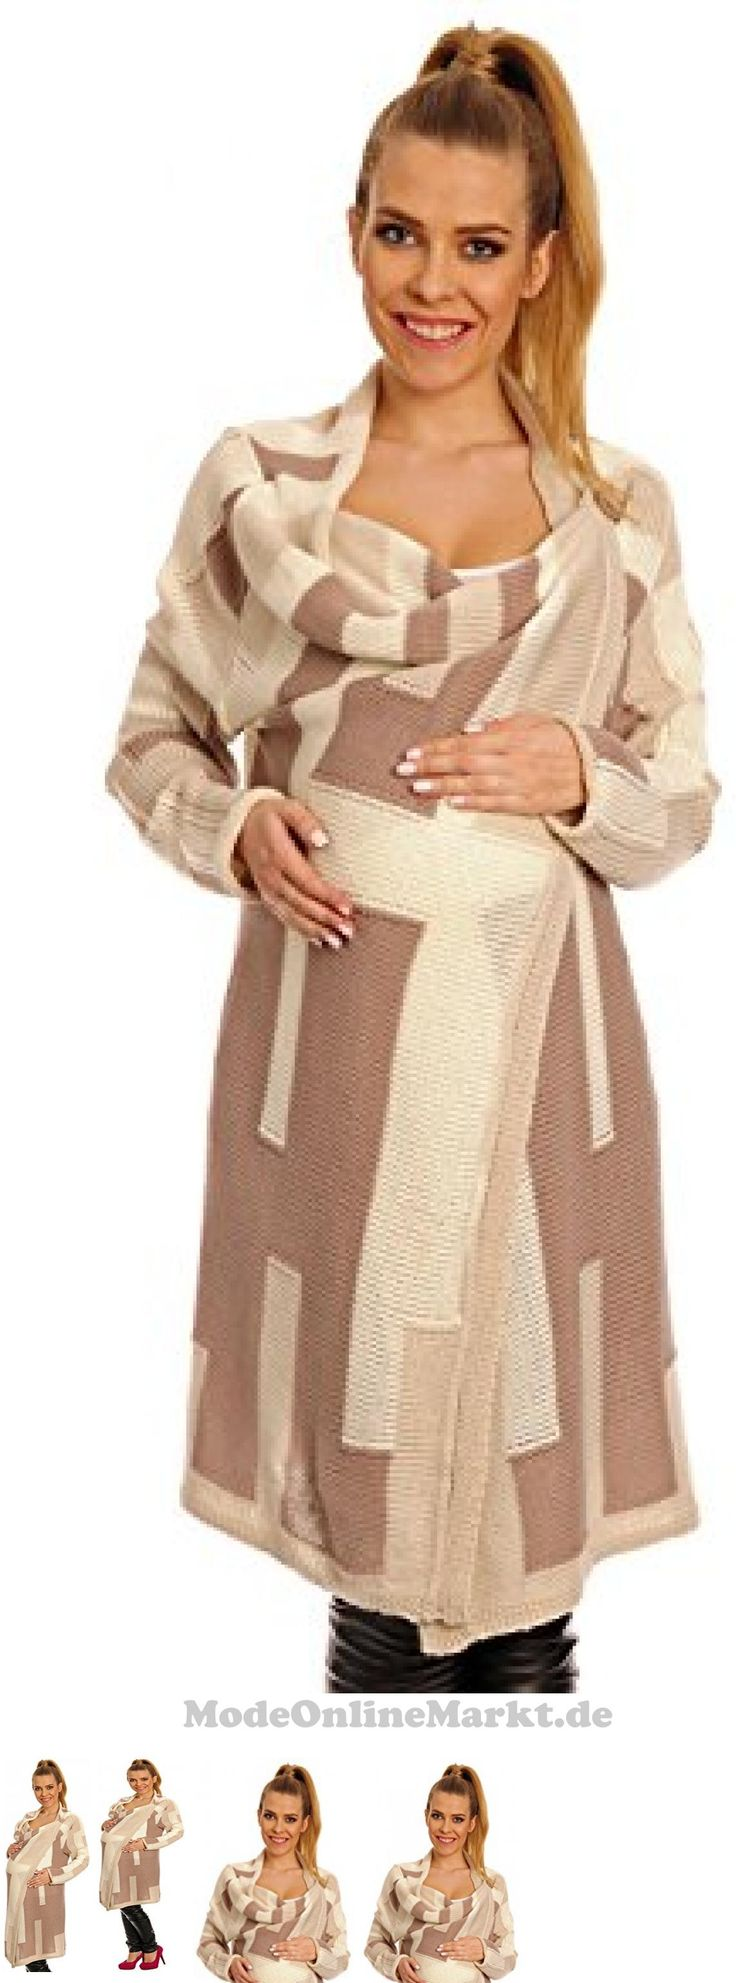 #Happy #Mama #Damen # #8211 #Umstands #Stretch #Strickjacke #Wasserfall #Jacke #Blazer #277p #Beige #Farbblock #38 #42 #7736797